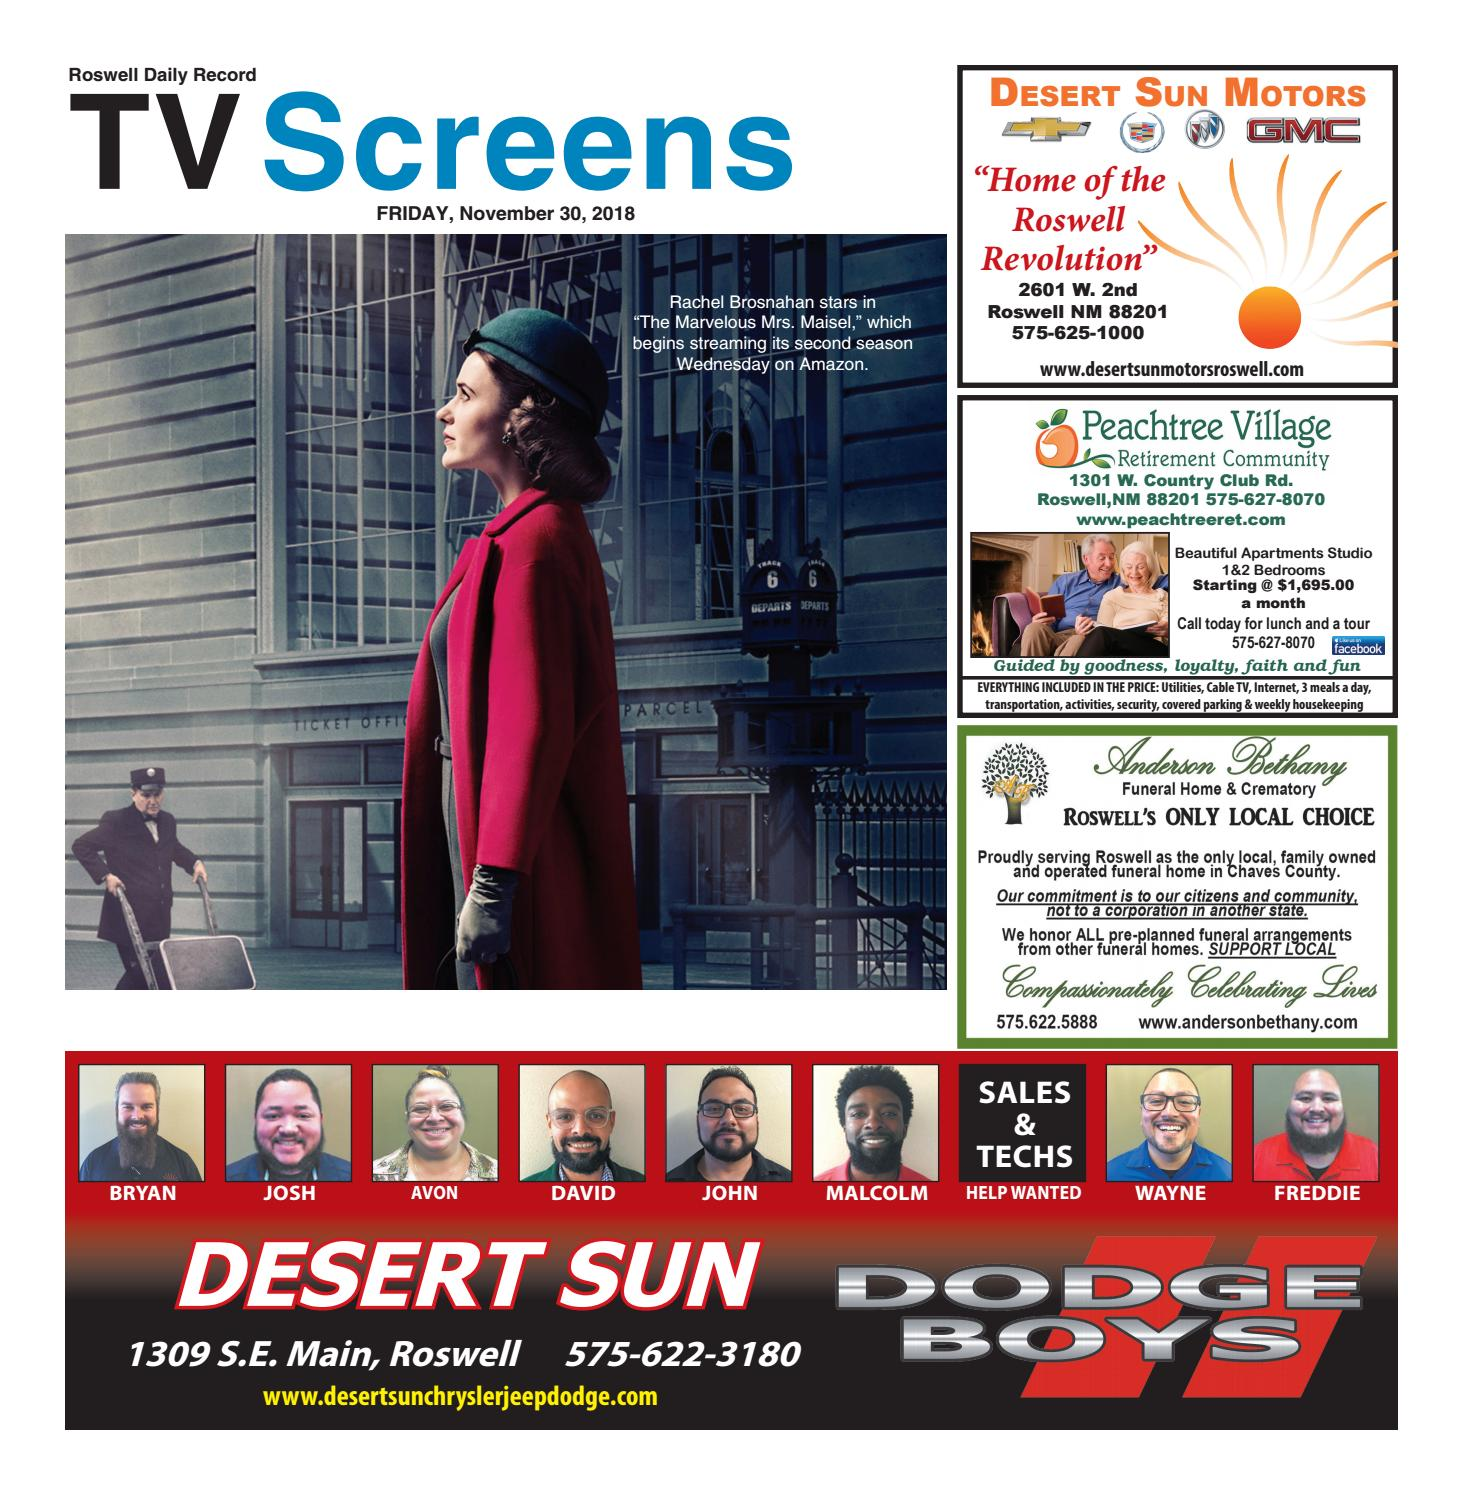 41a343c4 Screens 11 30 18 by Roswell Daily Record - issuu